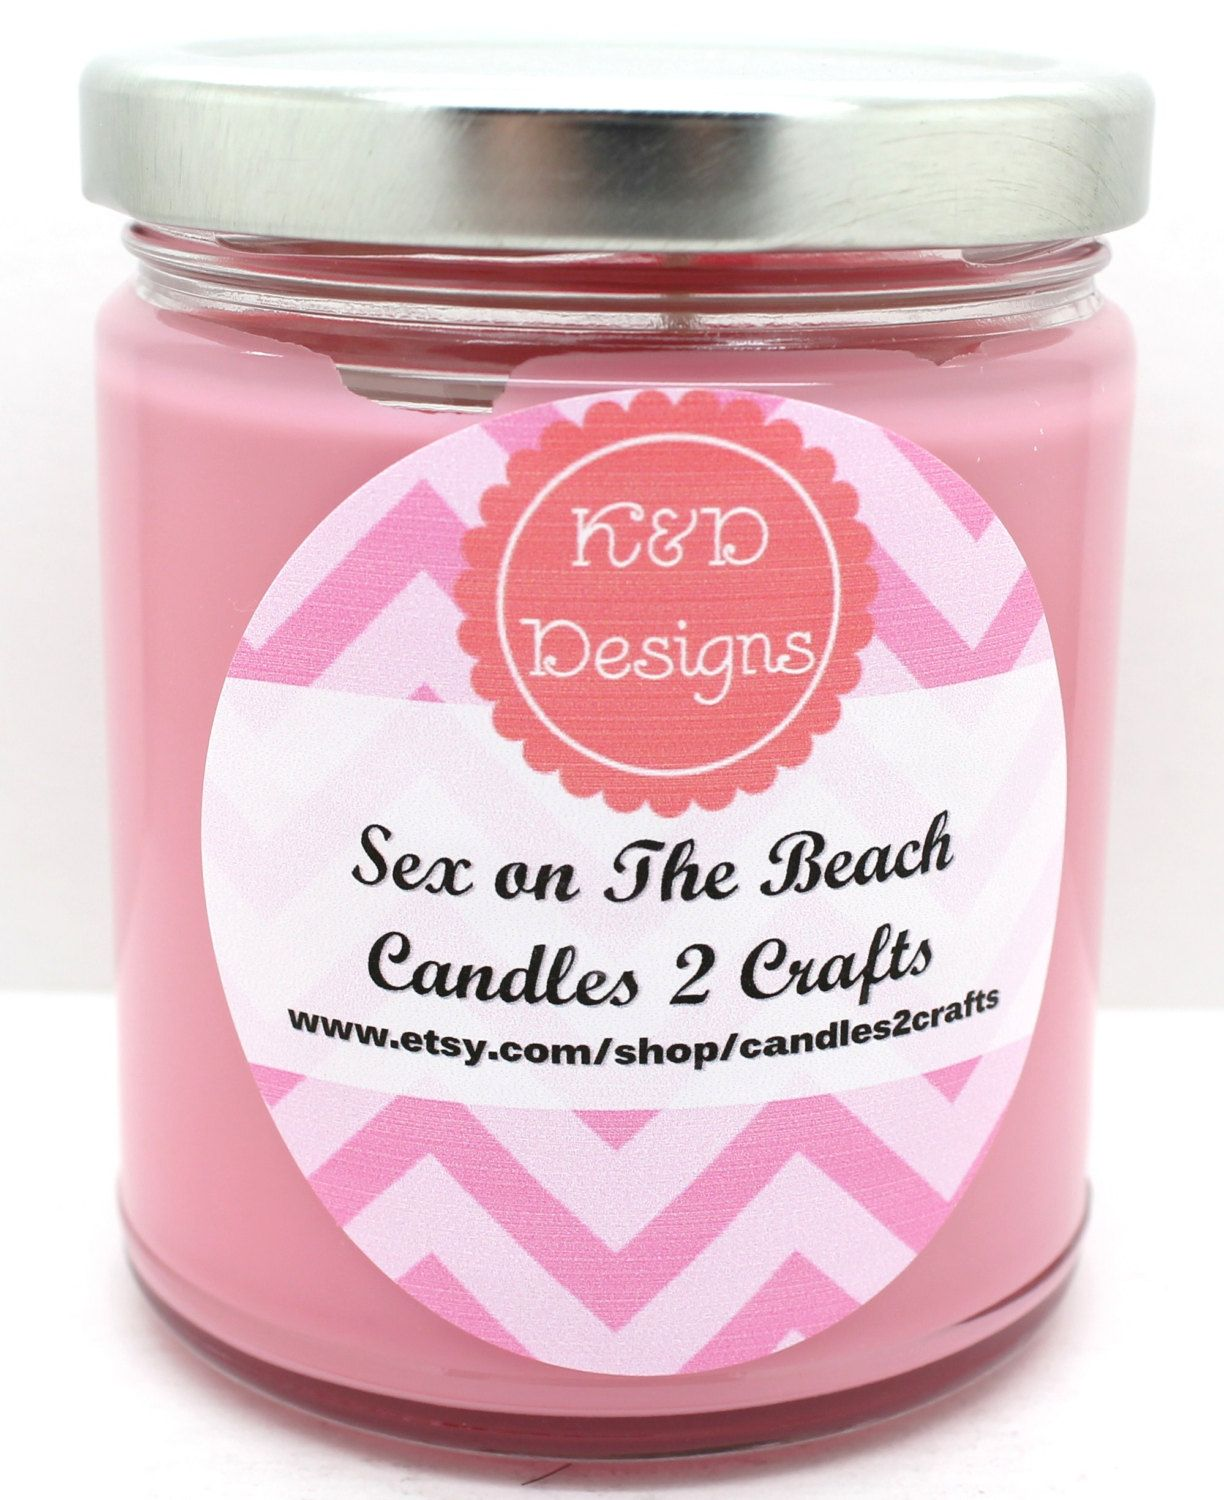 Sex on the beach candle scents